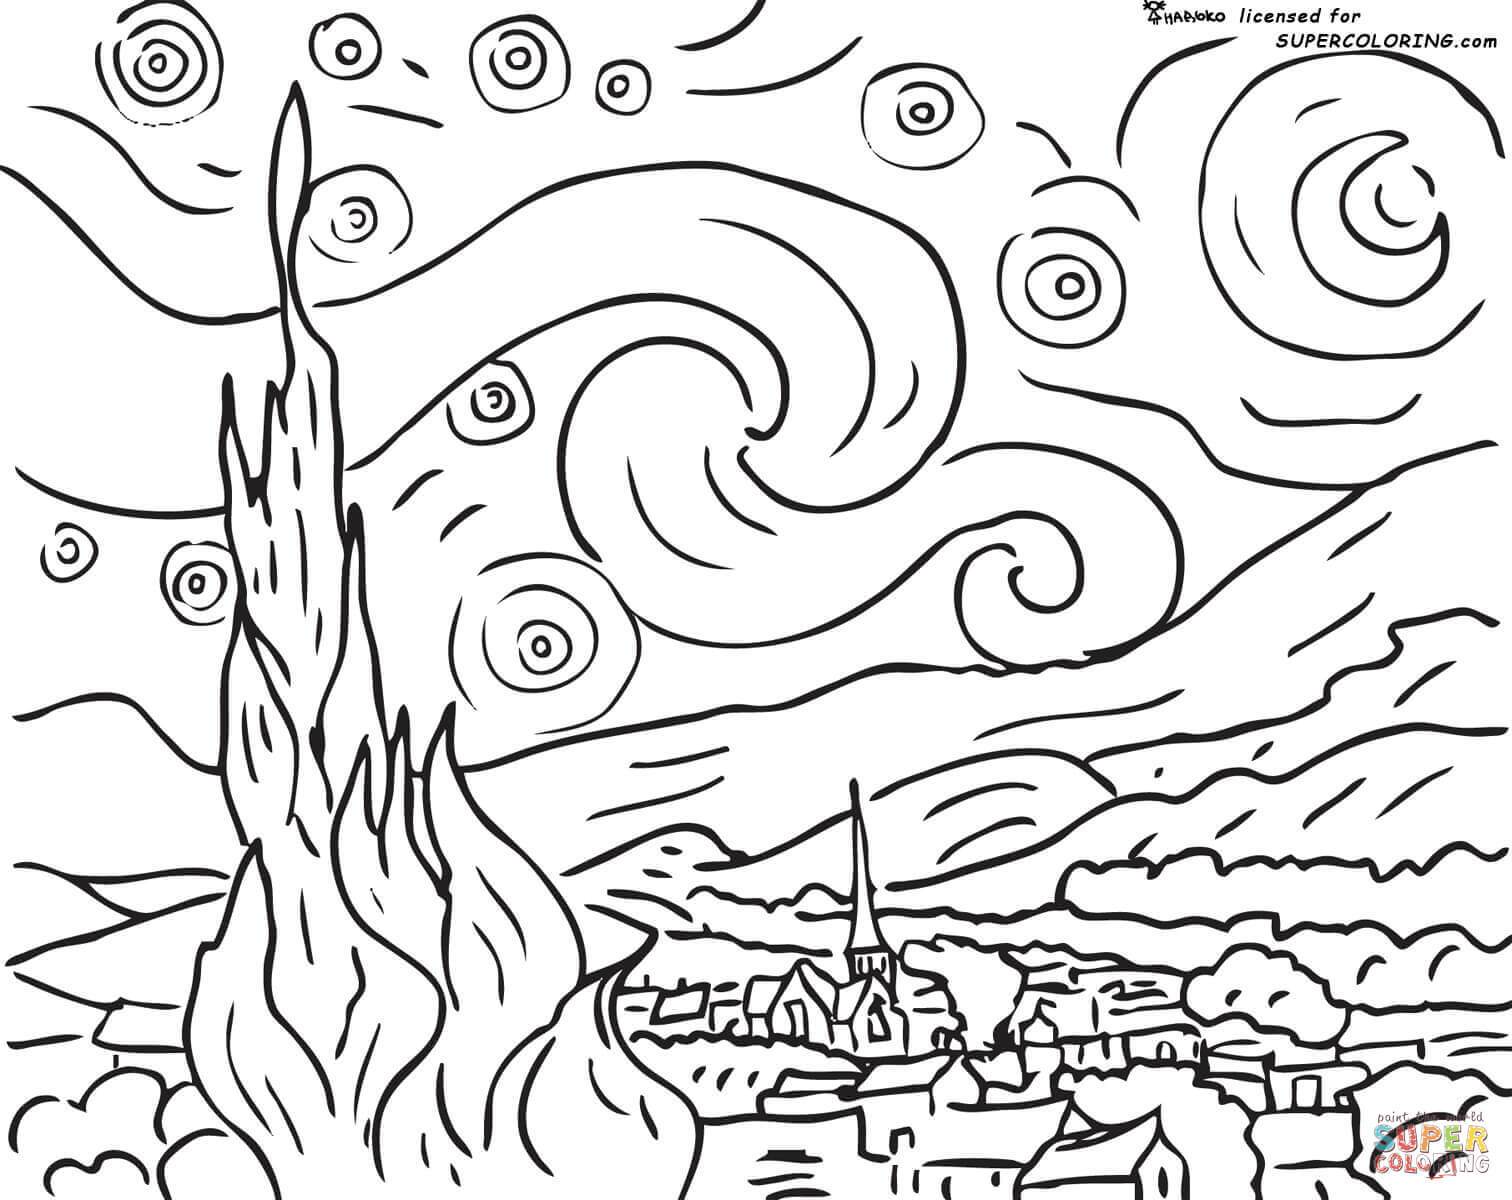 van gogh coloring pages to view printable version or color it online compatible with ipad and android tablets